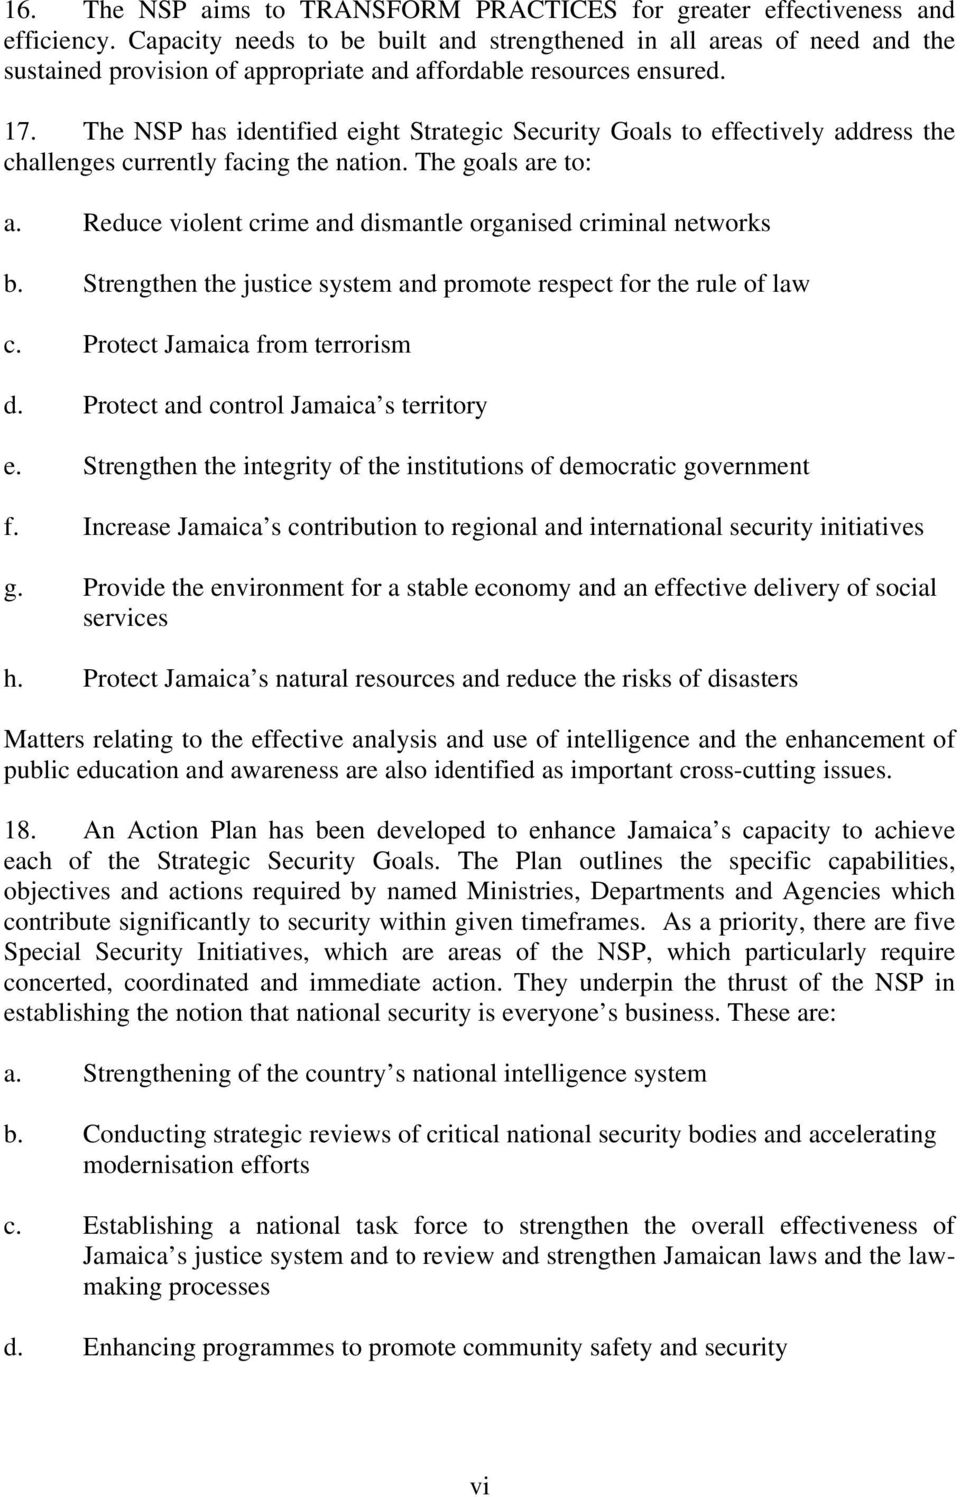 The NSP has identified eight Strategic Security Goals to effectively address the challenges currently facing the nation. The goals are to: a.